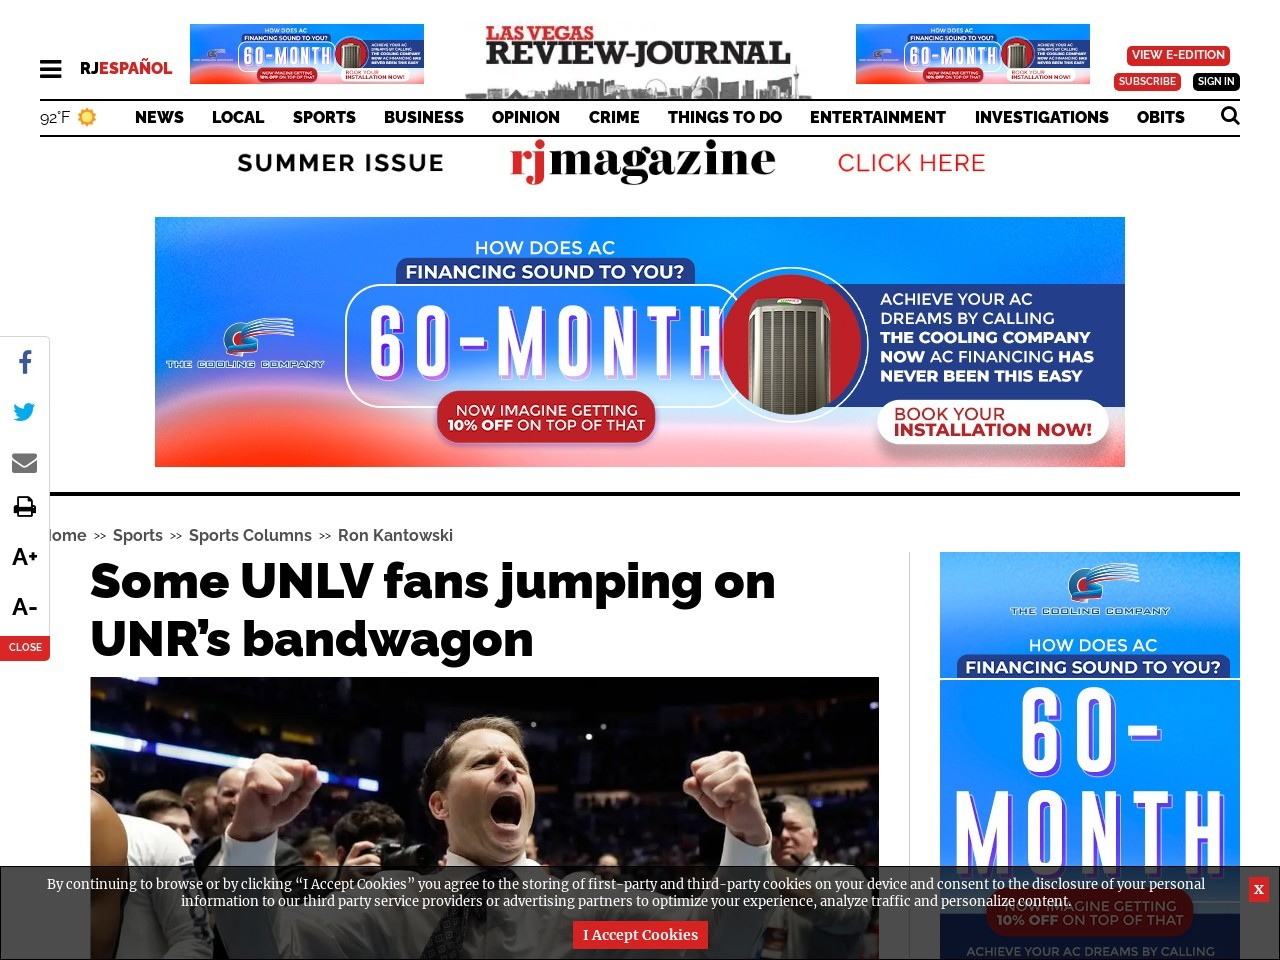 Some UNLV fans jumping on UNR's bandwagon